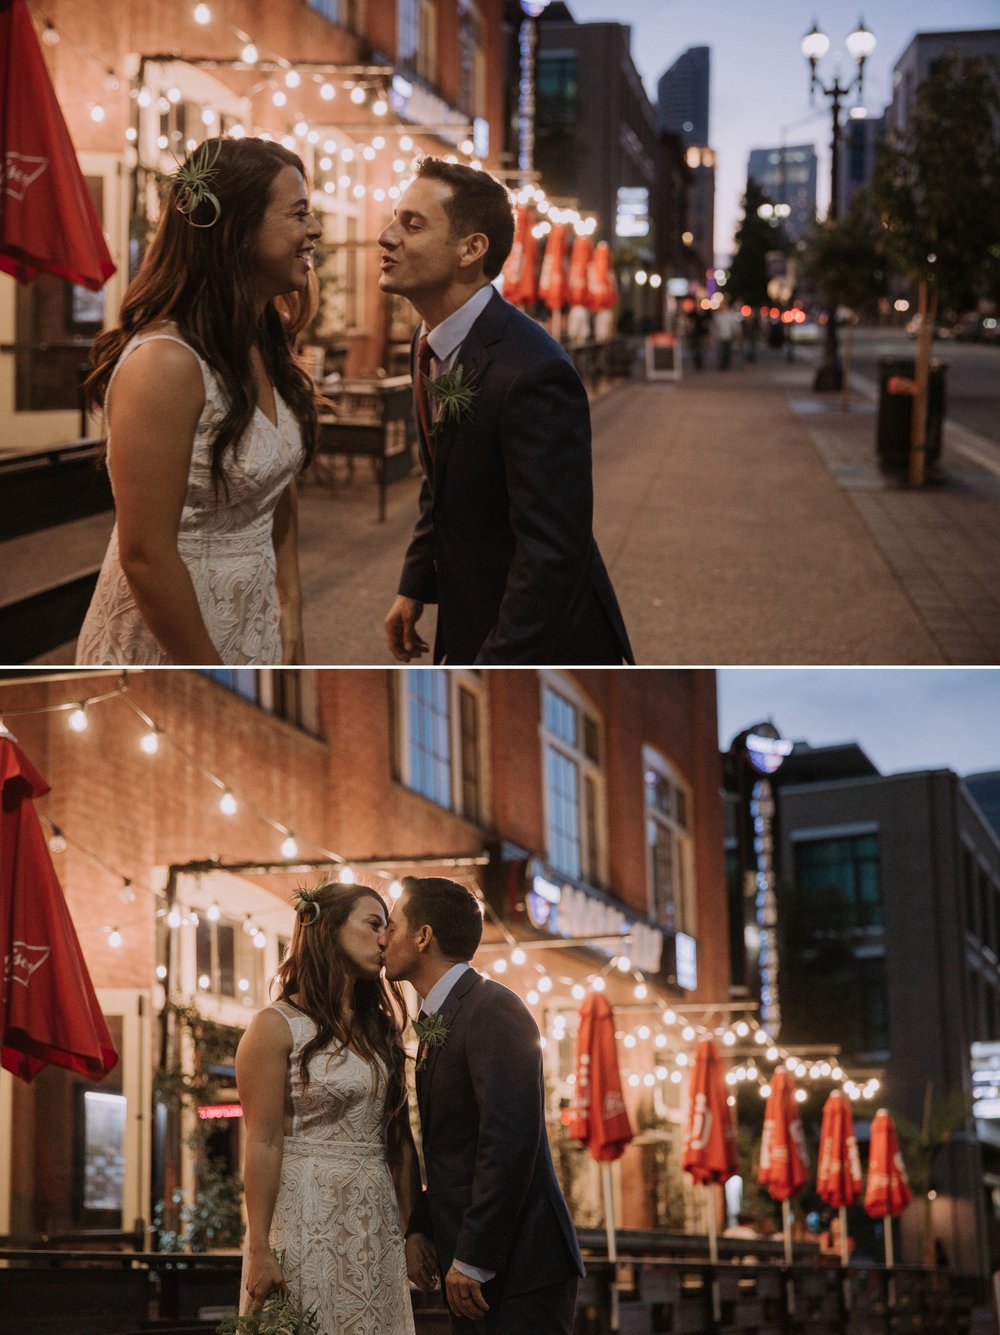 Wedding portraits in Gaslamp Quarter by San Diego photographer Paige Nelson